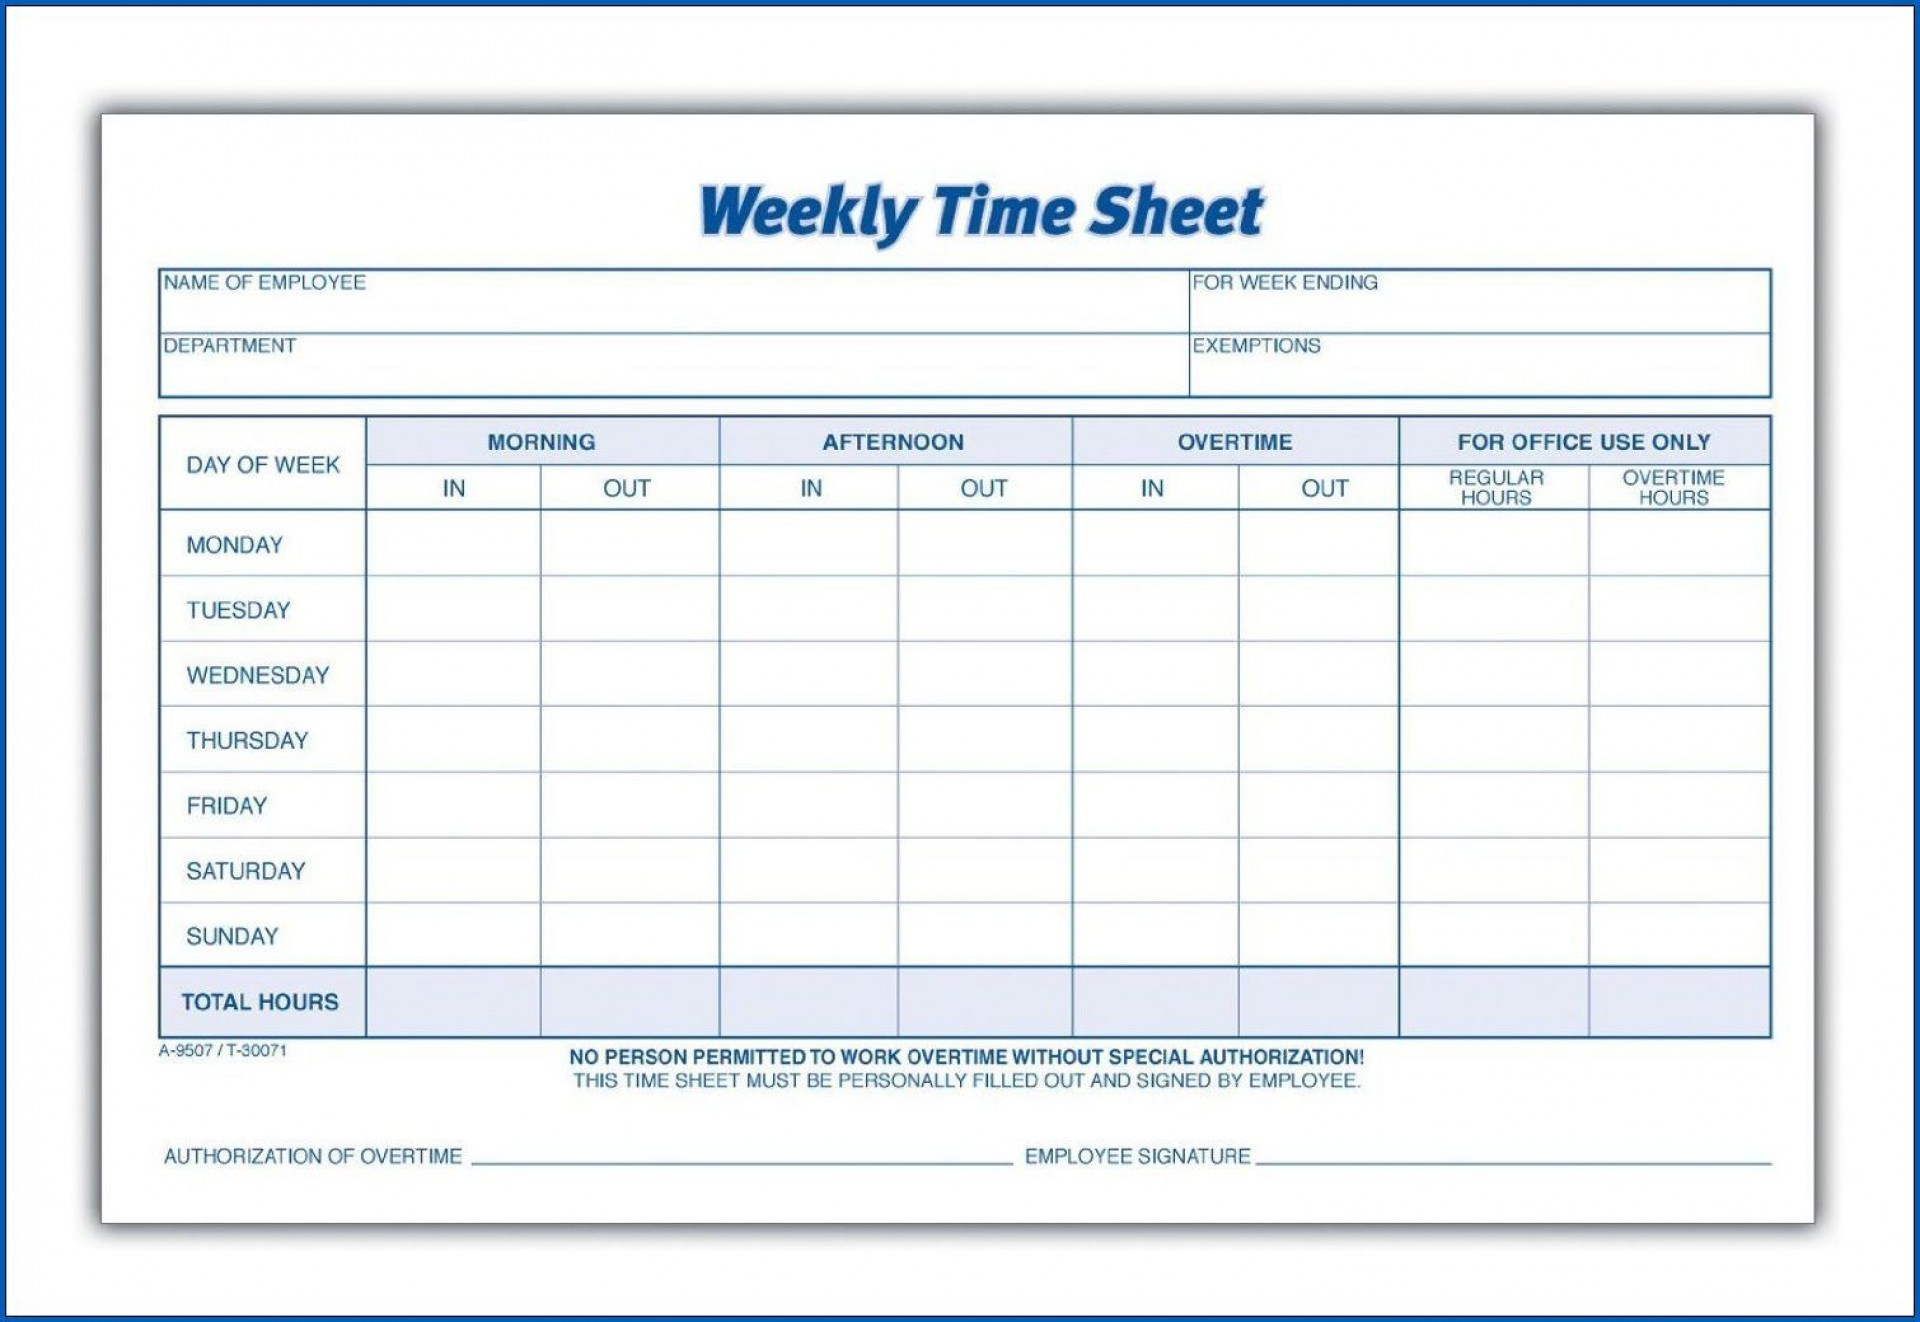 004 Marvelou Free Weekly Timesheet Template Idea  For Multiple Employee Biweekly Excel With Formula1920